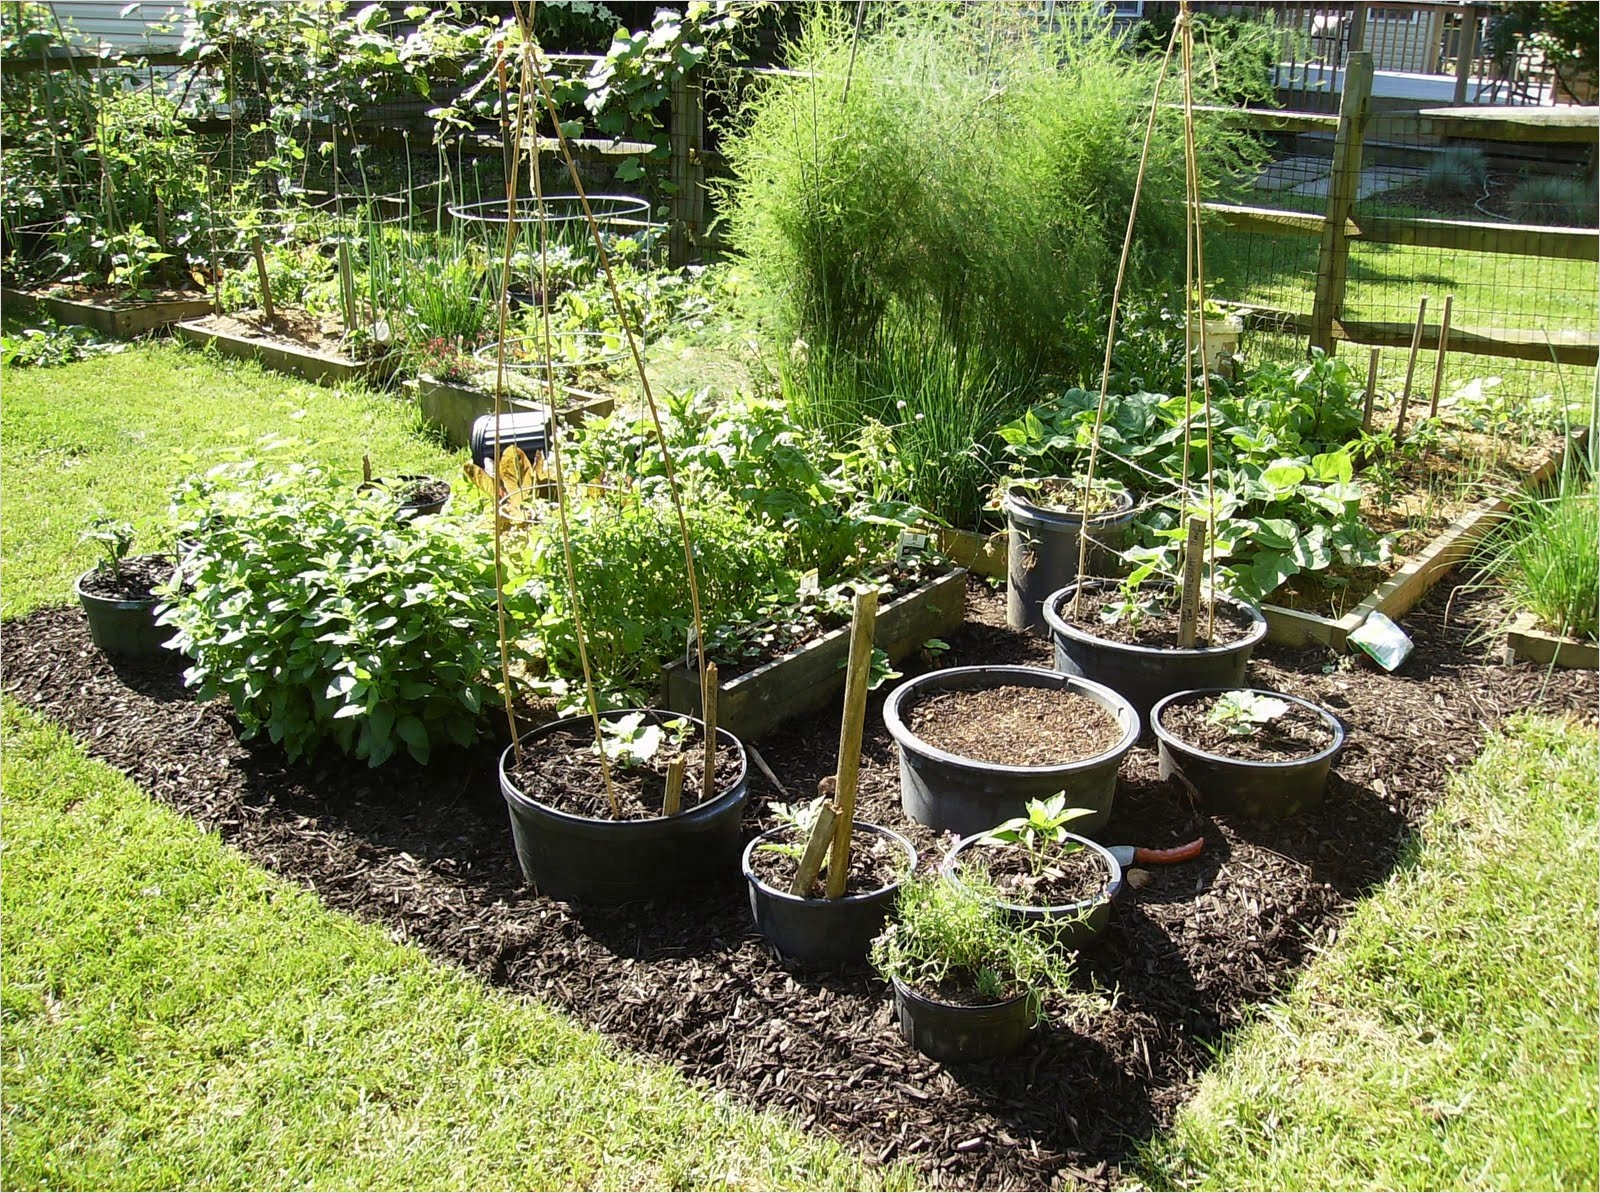 Vegetable Garden Designs 42 38 Homes that Turned their Front Lawns Into Beautiful Ve Able Gardens 7